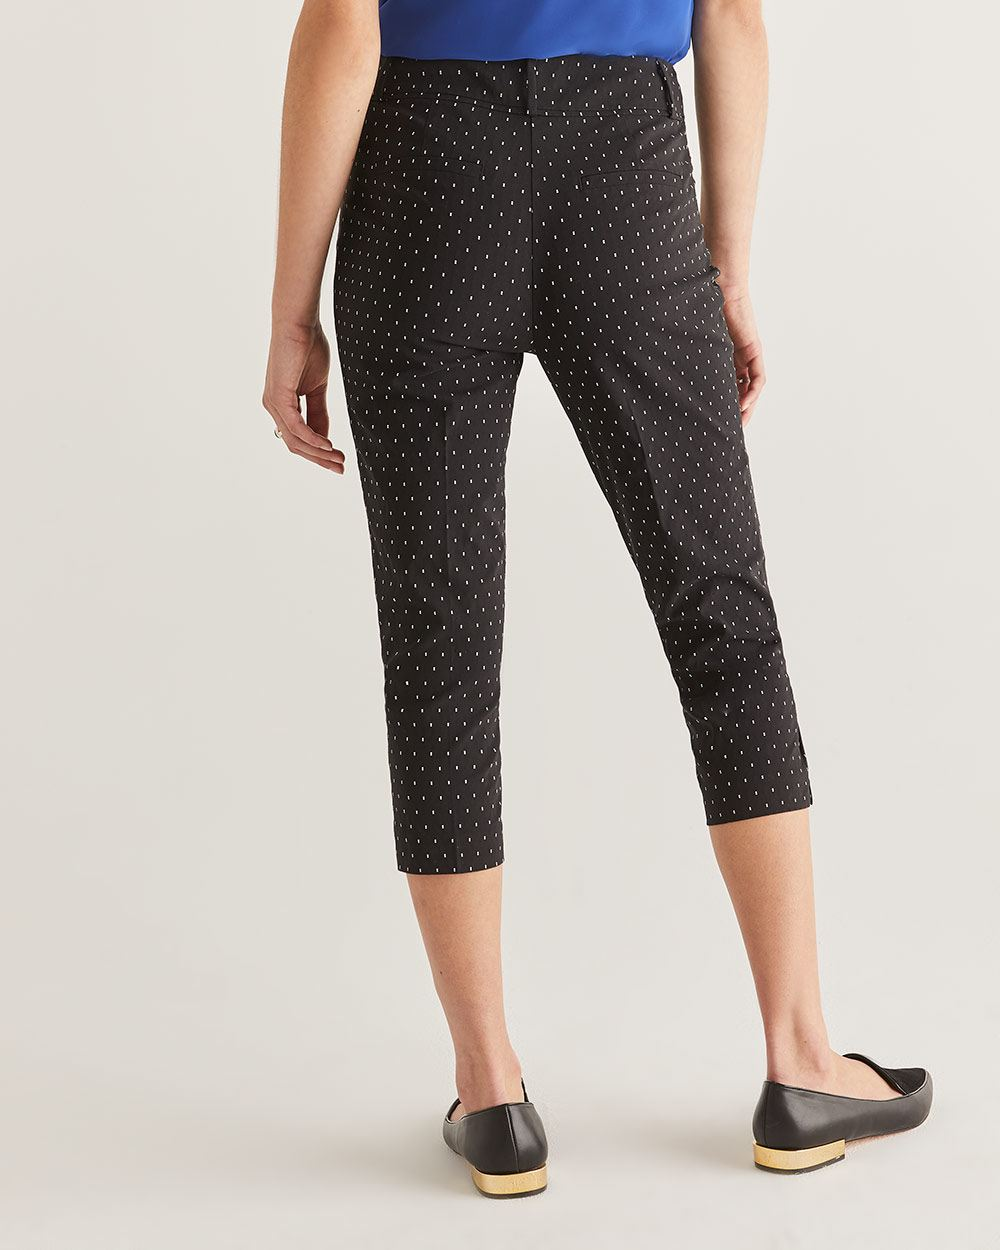 The Iconic Polka-Dot Print Capris - Petite